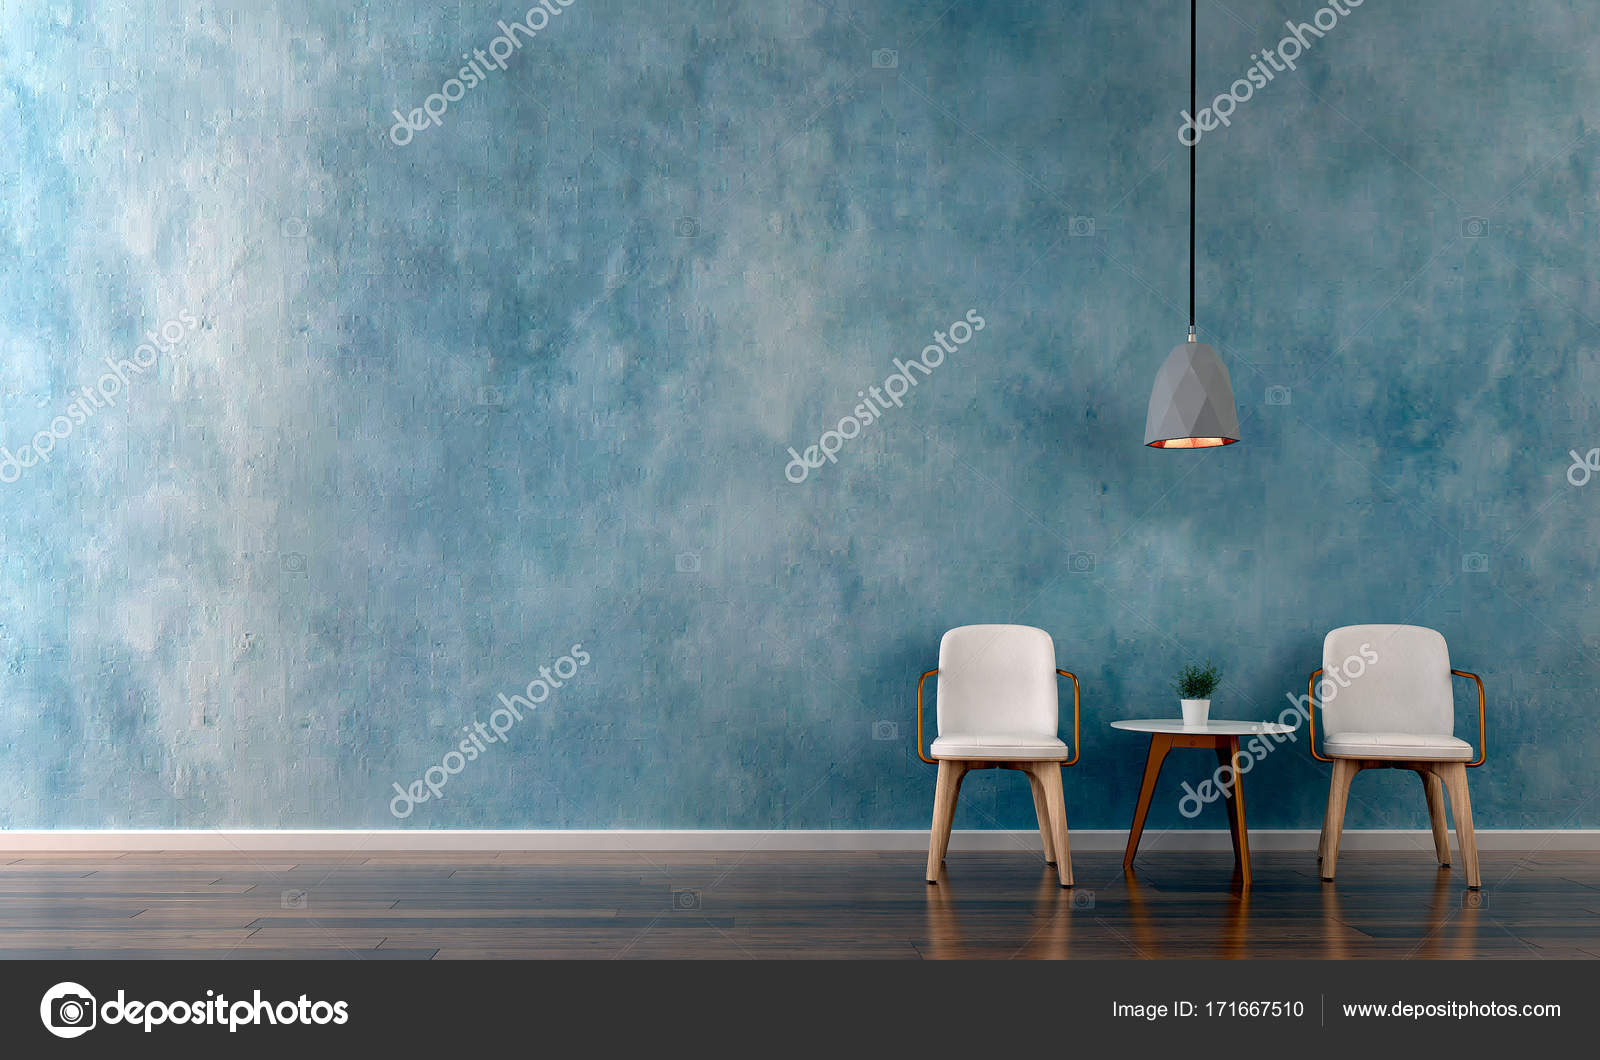 The Interior Design Of Lounge Chairs And Living Room And Blue Texture Wall Background Stock Photo Image By C Teeraphan 171667510